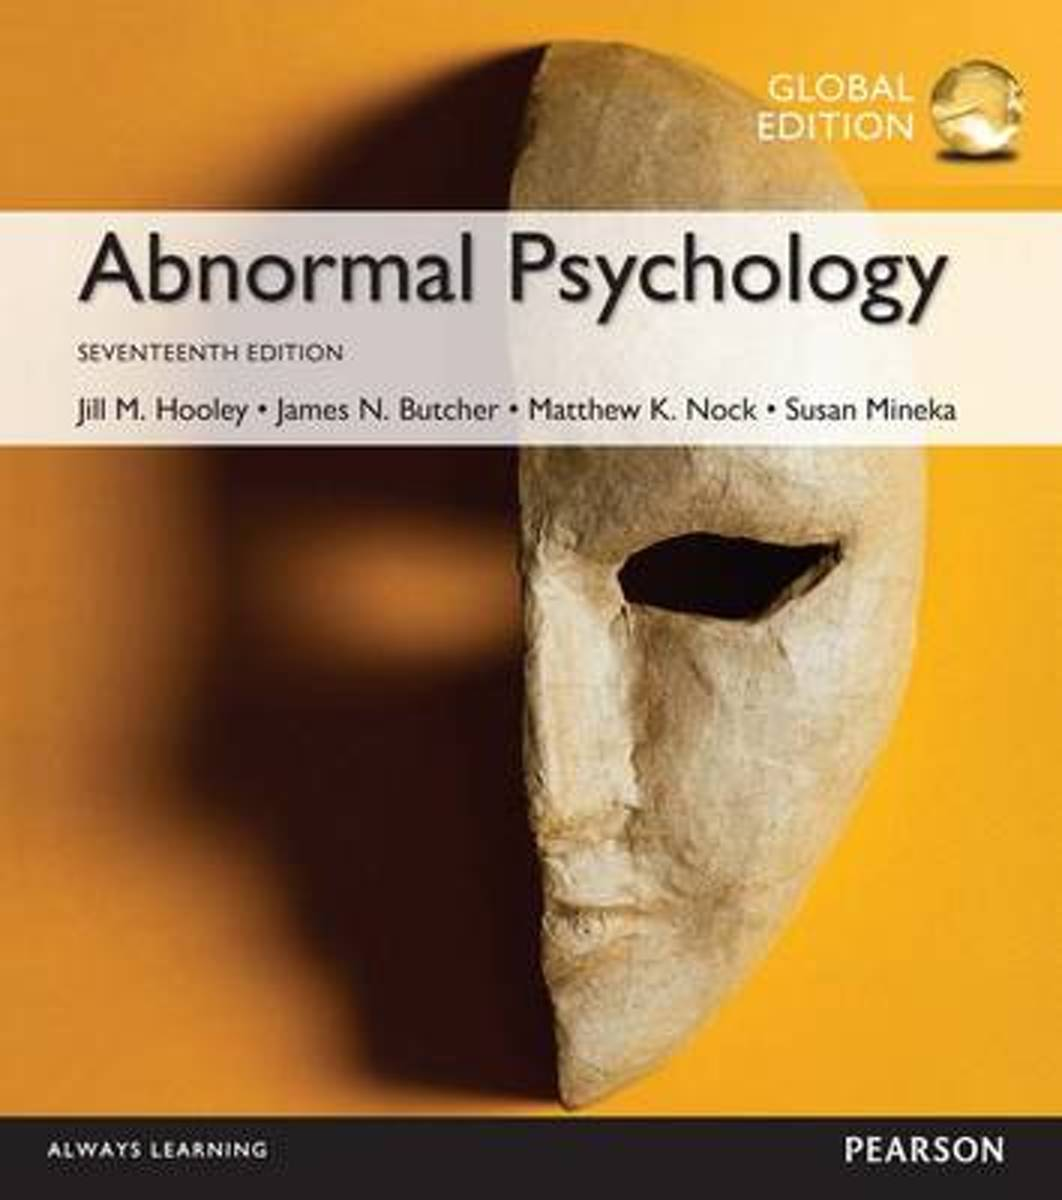 Abnormal Psychology plus MyPsychLab with Pearson eText, Global Edition